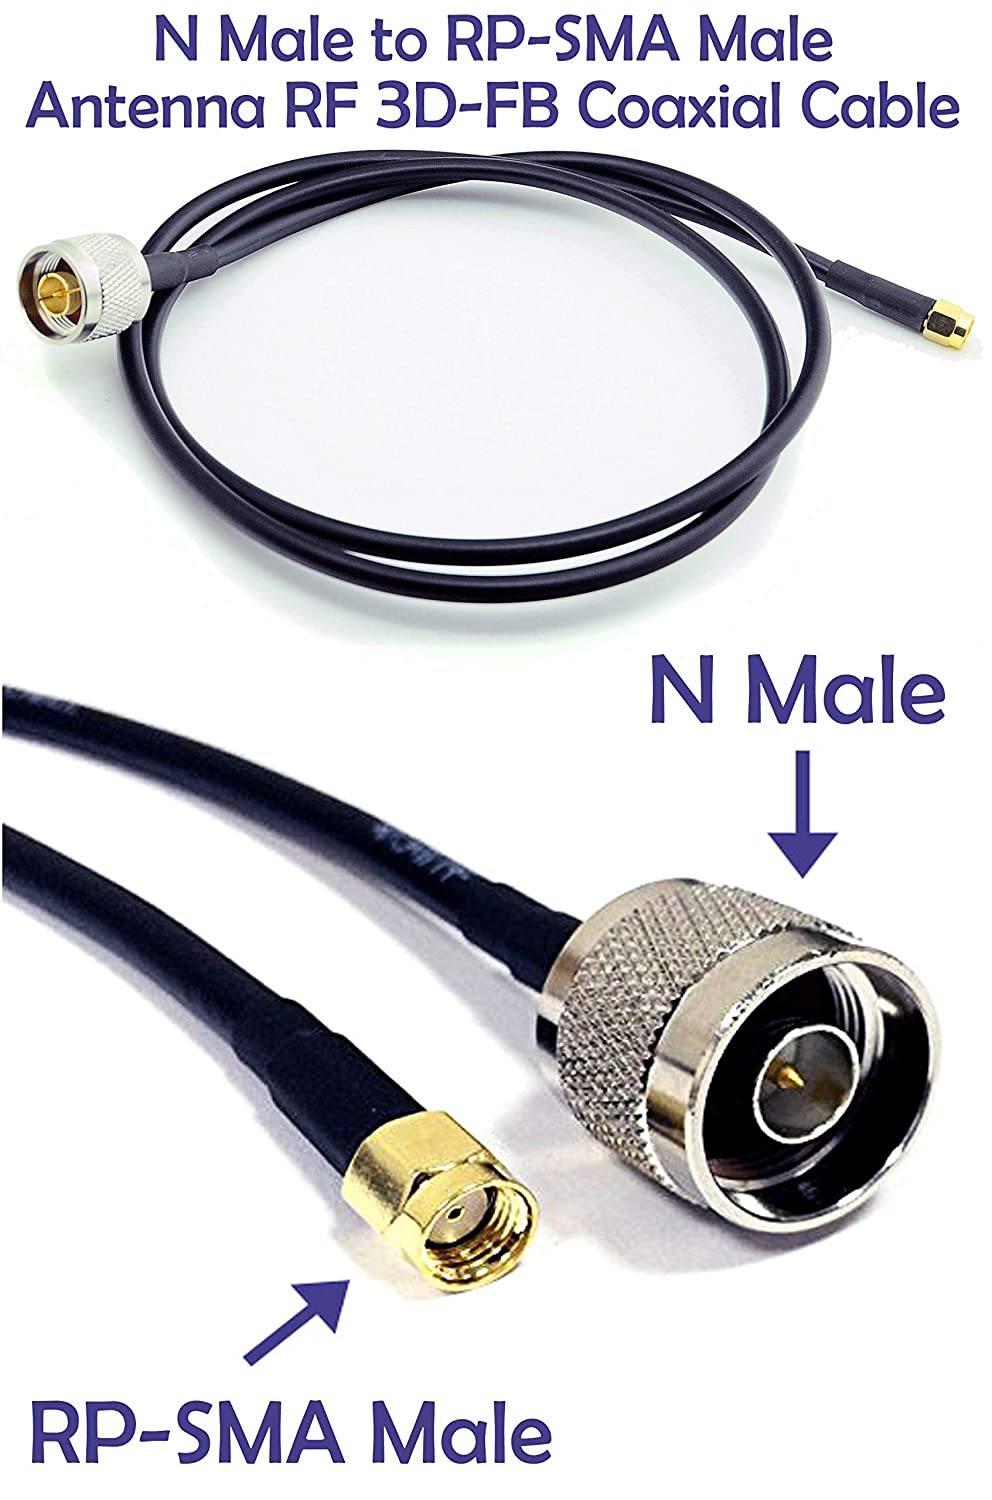 N Male to RP-SMA Male Connector Antenna Pigtail Coaxial 2.4Ghz/5Ghz 3D-FB Low Loss Copper Cable (3ft (1m/100cm) length)